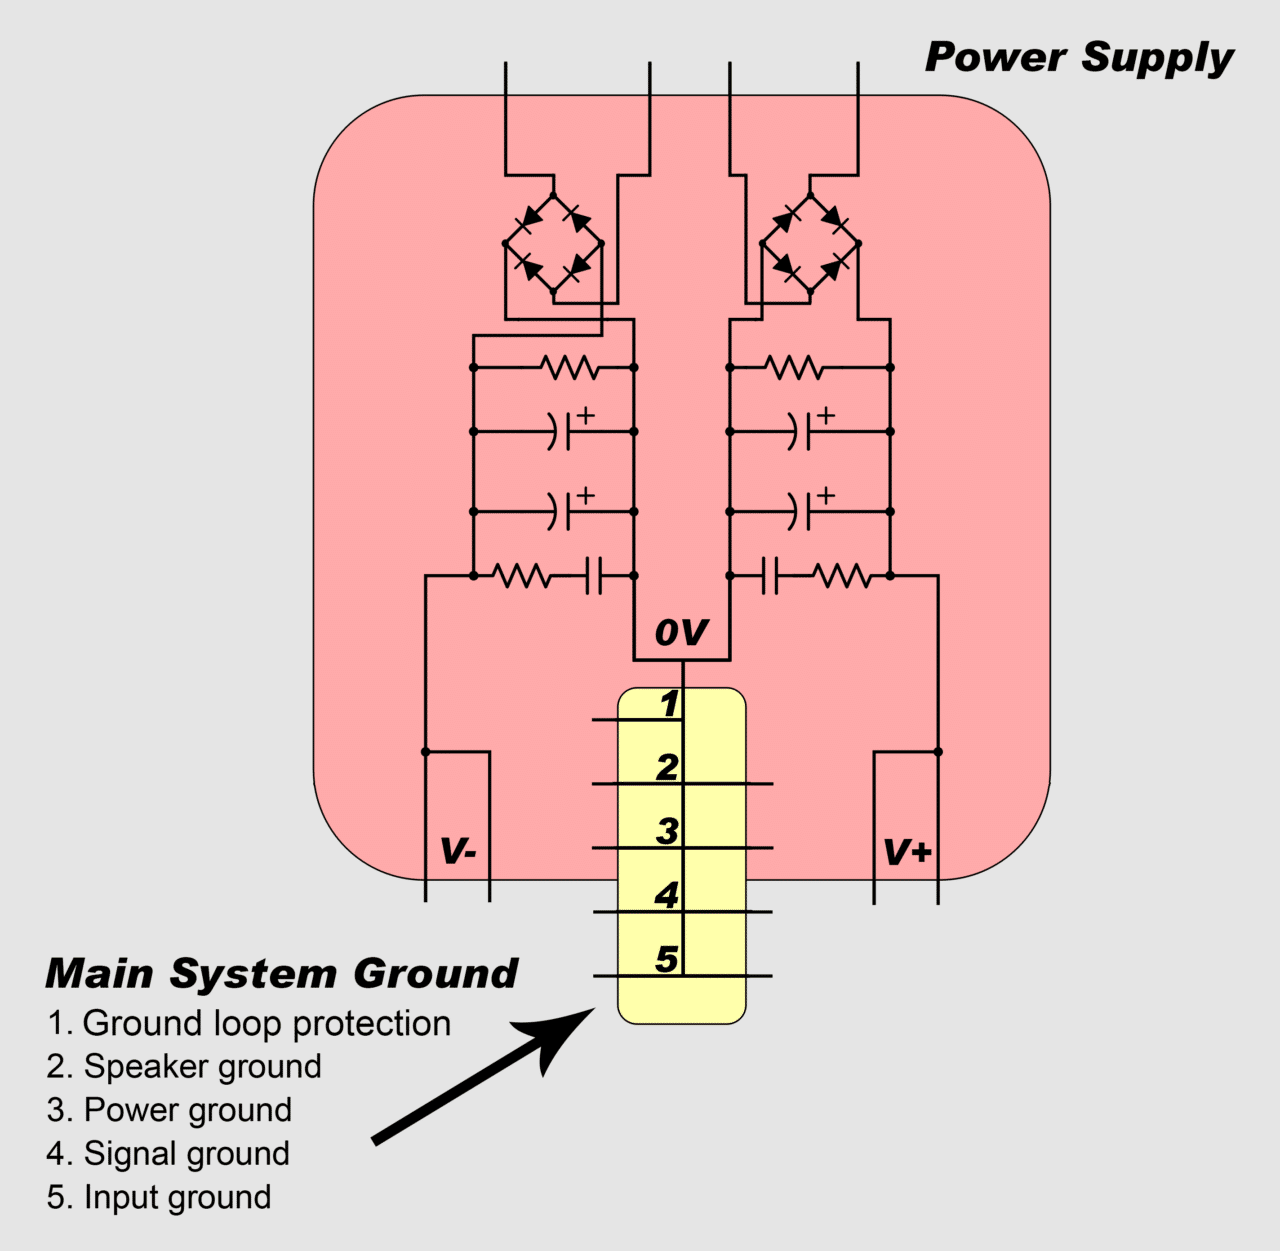 How To Design And Build An Amplifier With The Tda2050 Circuit Basics 25w Hifi Audio Mosfet Ground Networks Are Connected Main System In A Particular Order So That High Currents Only Flow Through Low Current Grounds For Very